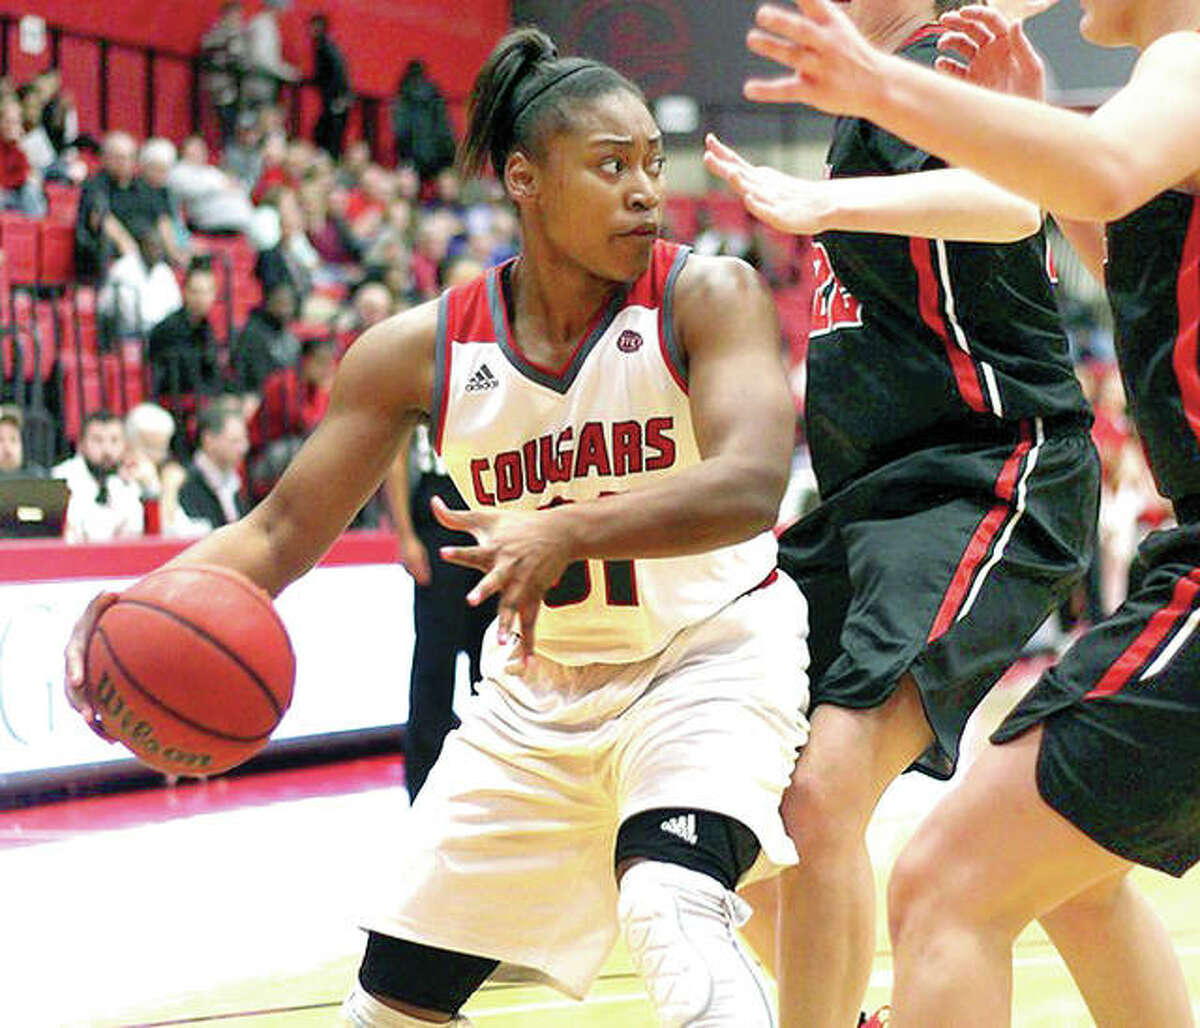 SIUE's Donshel Beck scored 11 points and had eight rebounds in the Cougars' 62-47 loss at Illinois State Thursday night in Normal.